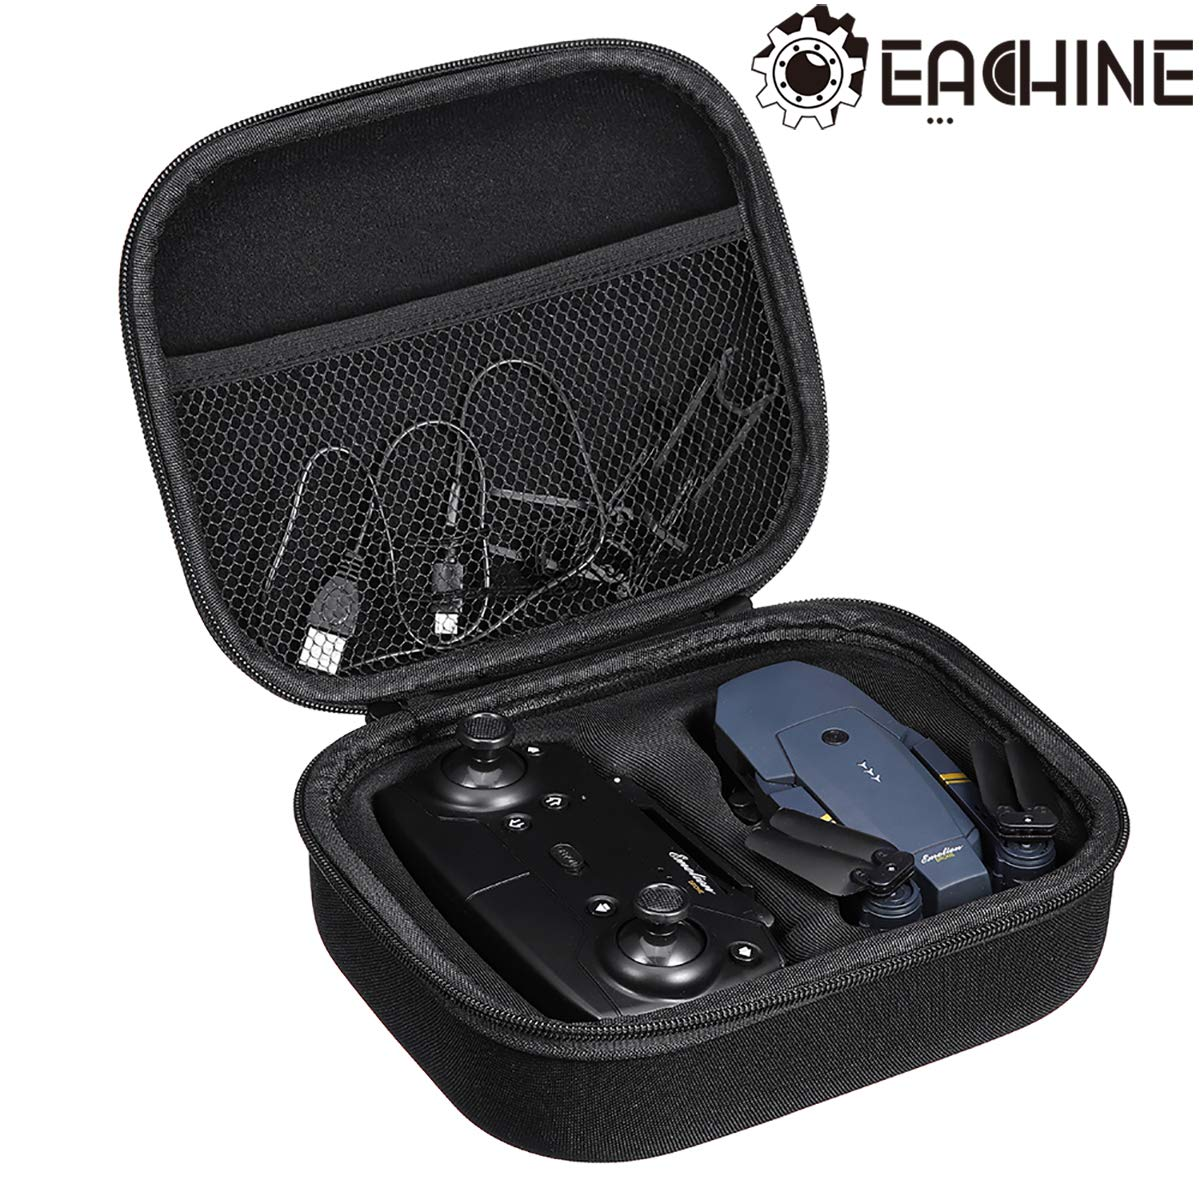 EACHINE E58 RC Drone Carrying Case Portable EVA Hard Handbag Storage Bag Carrying Case Box by EACHINE